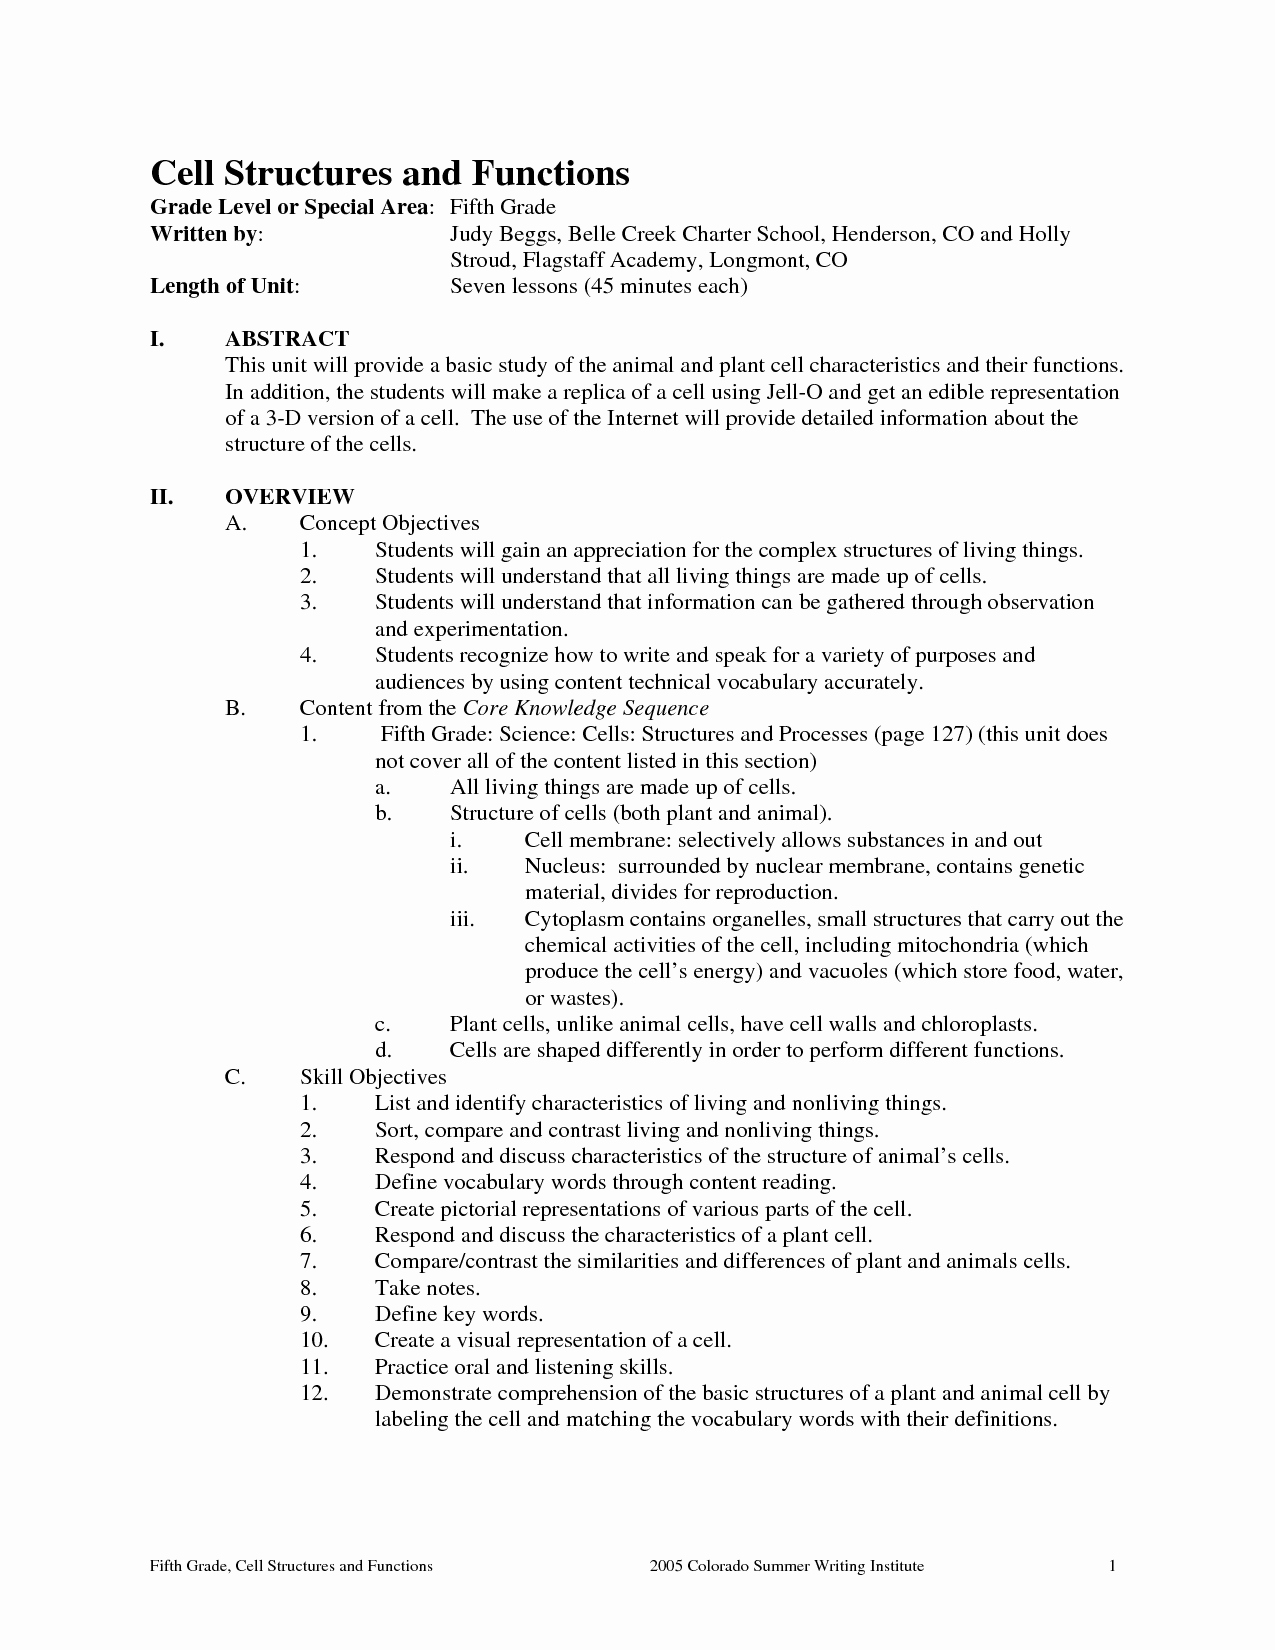 Cell Structure and Function Worksheet Elegant 13 Best Of Plant Structure and Function Worksheet